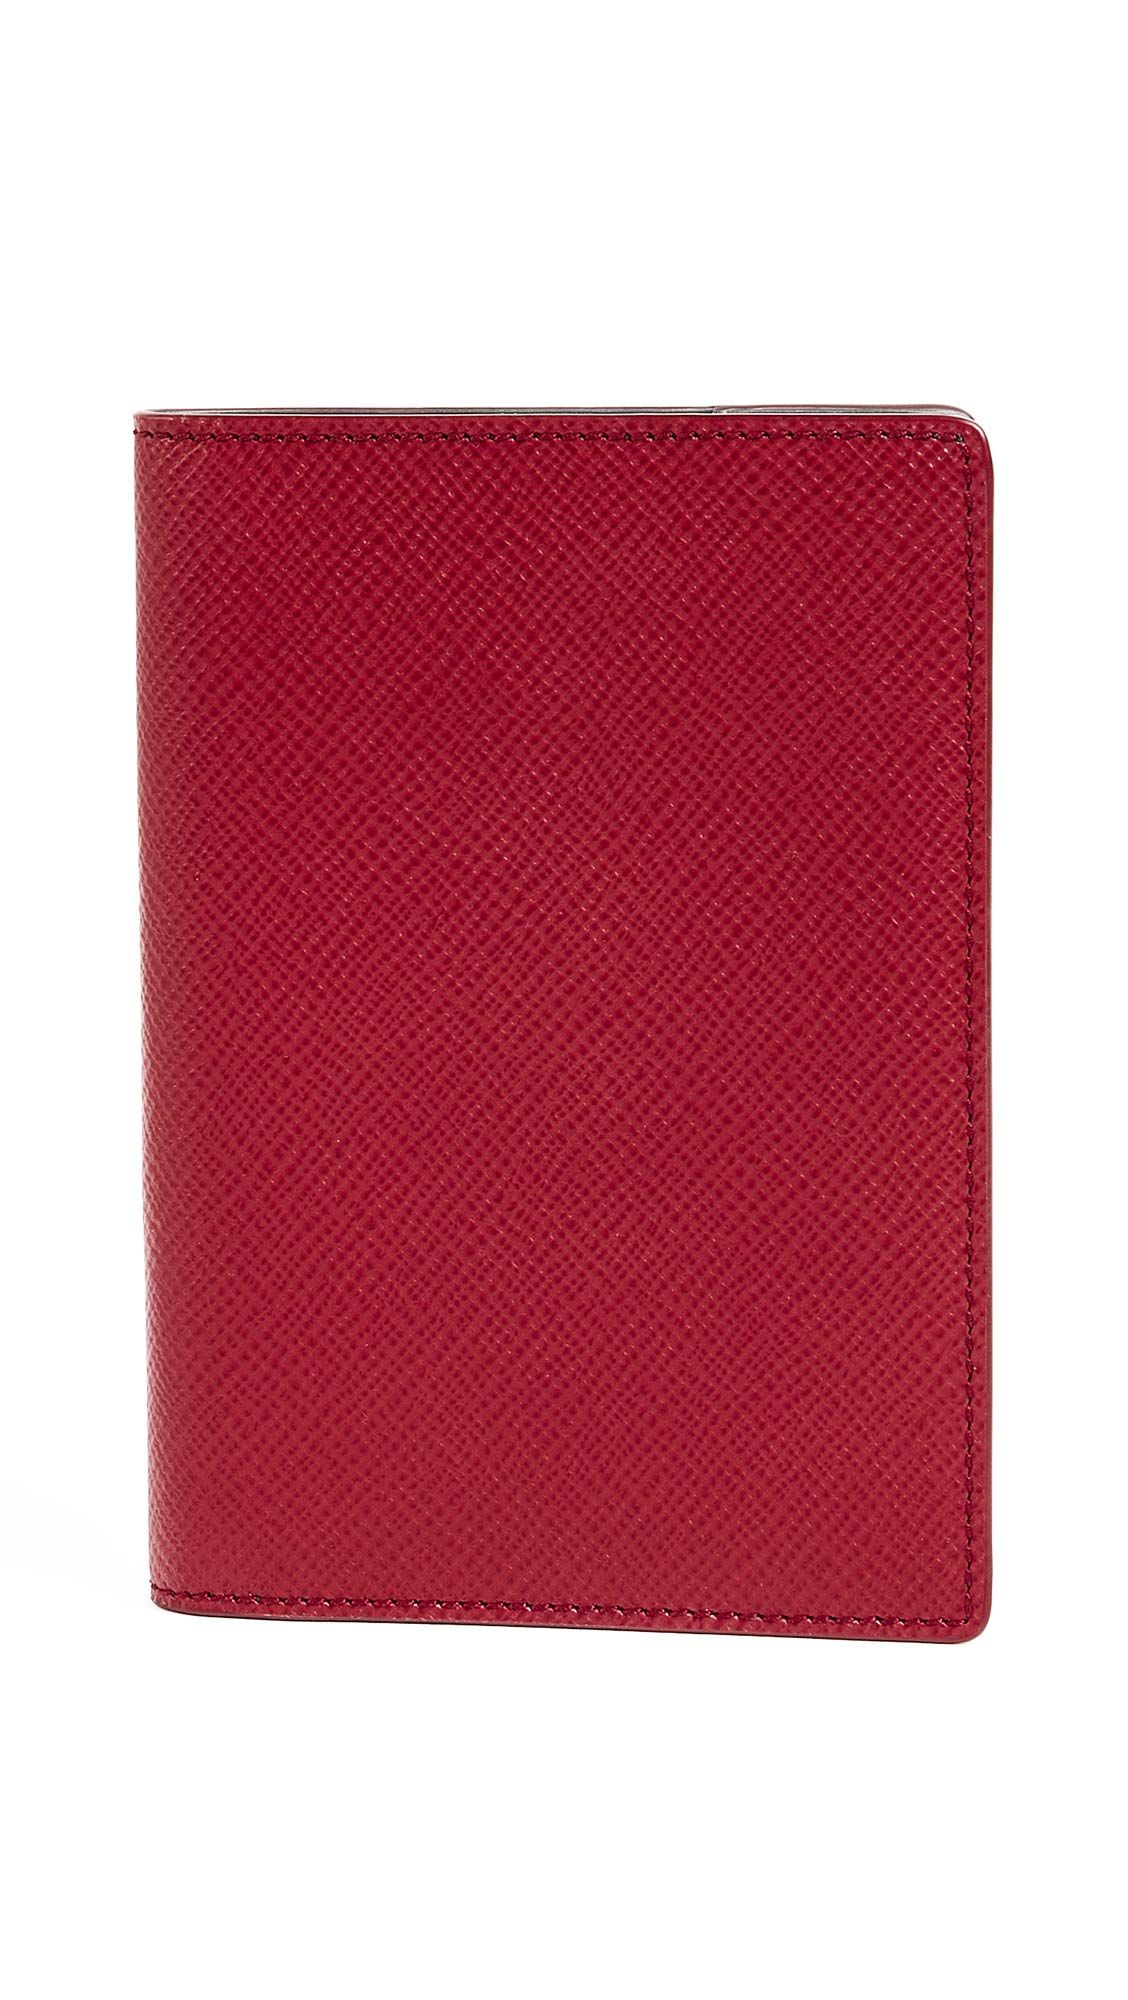 Smythson Women's Panama Passport Cover, Red, One Size